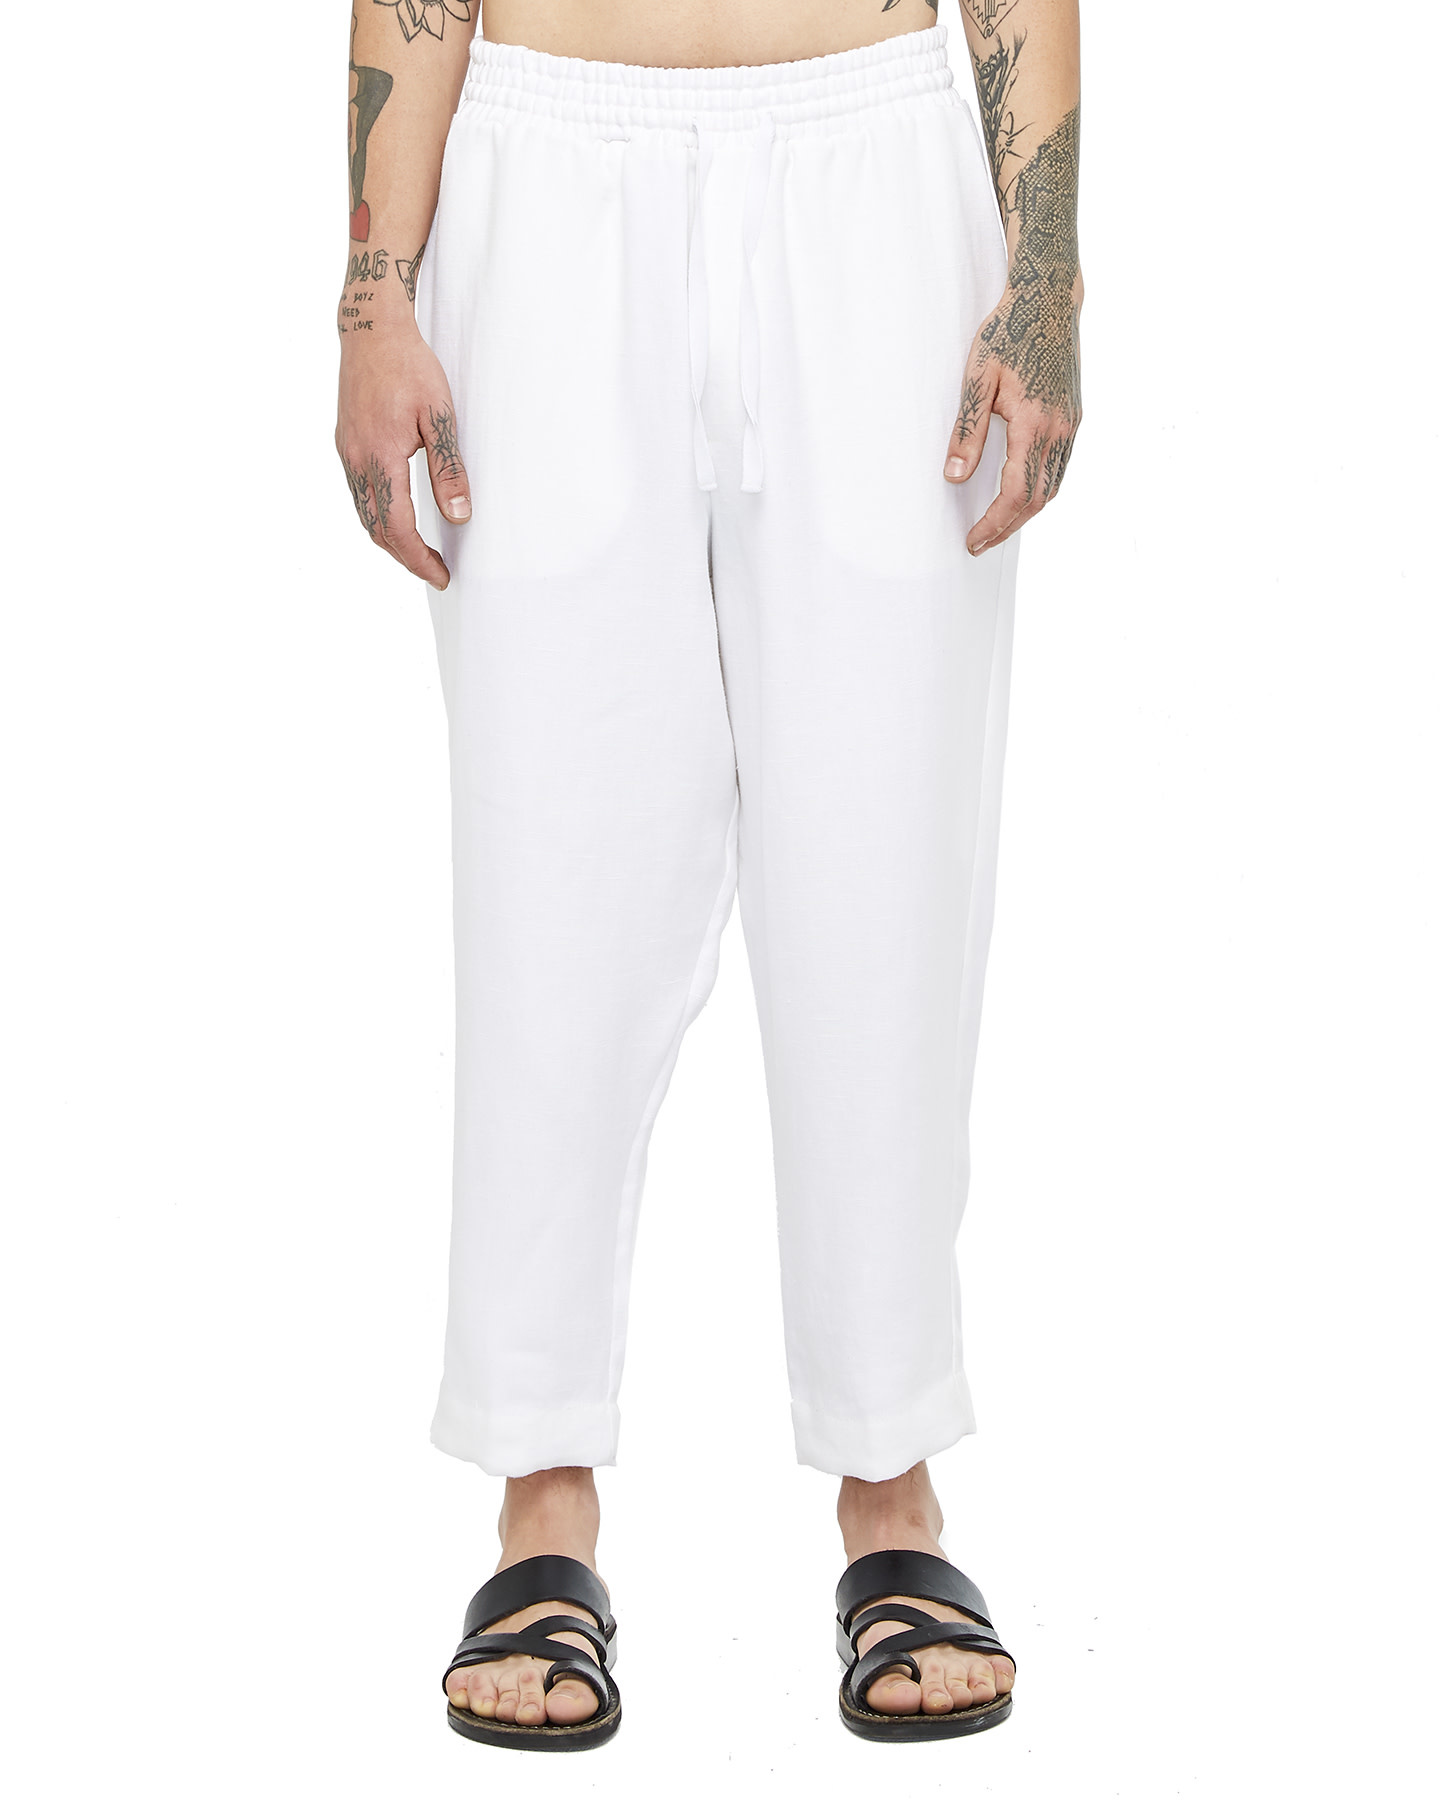 RELAXED LINEN PANT - WHITE